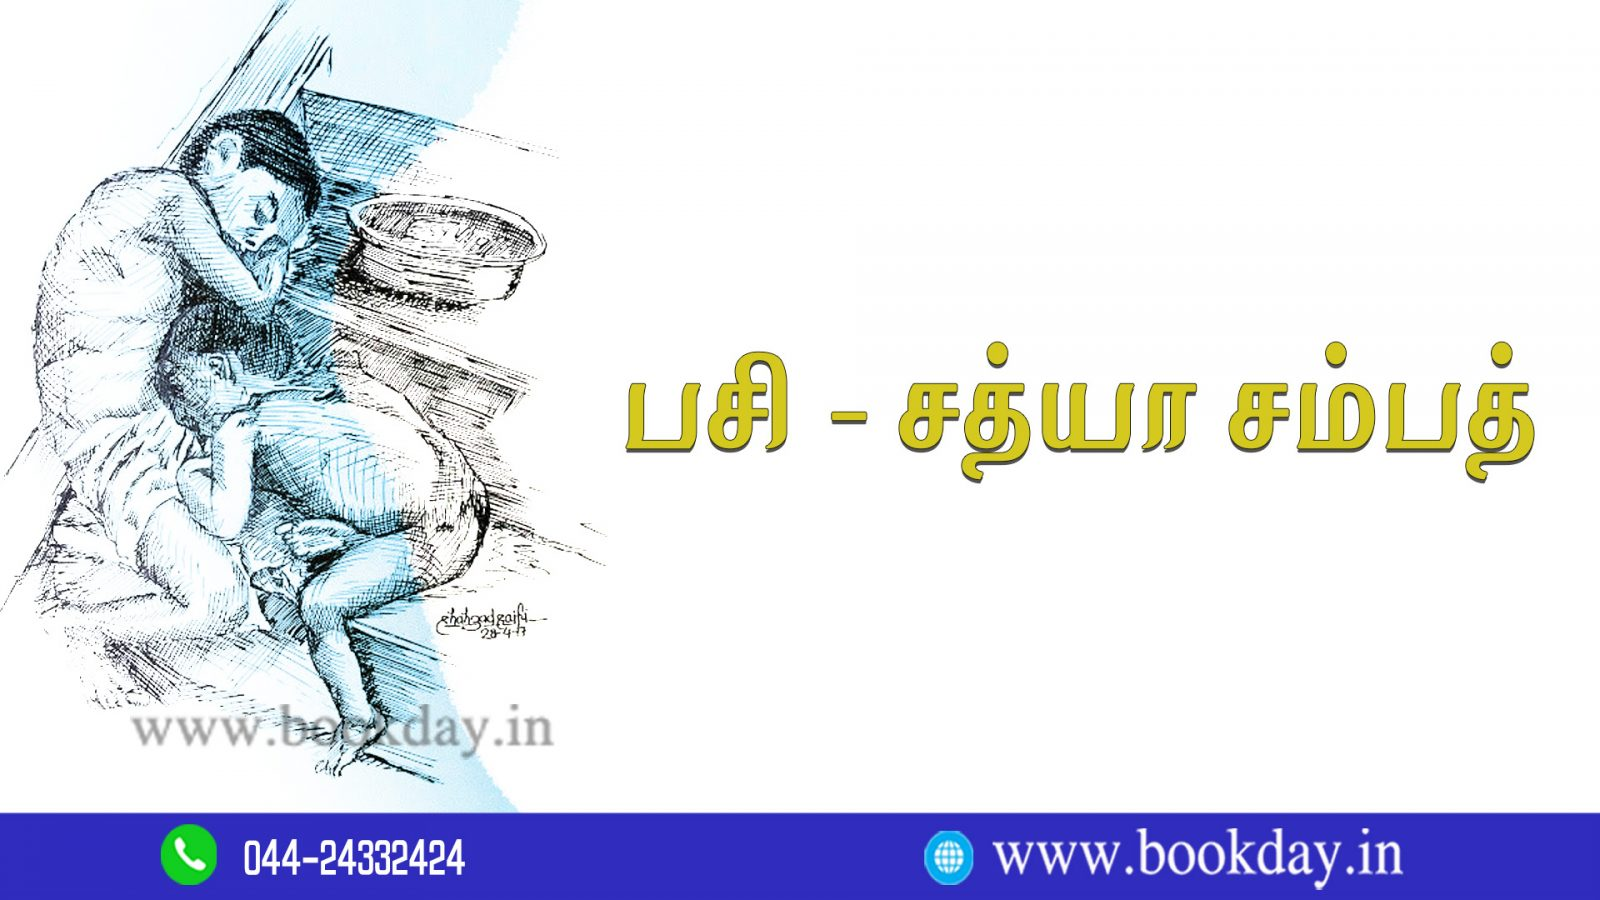 Hunger (பசி) Poetry By Sathya Sampath (சத்யா சம்பத்). Book Day And Bharathi TV Are Branches of Bharathi Puthakalayam.